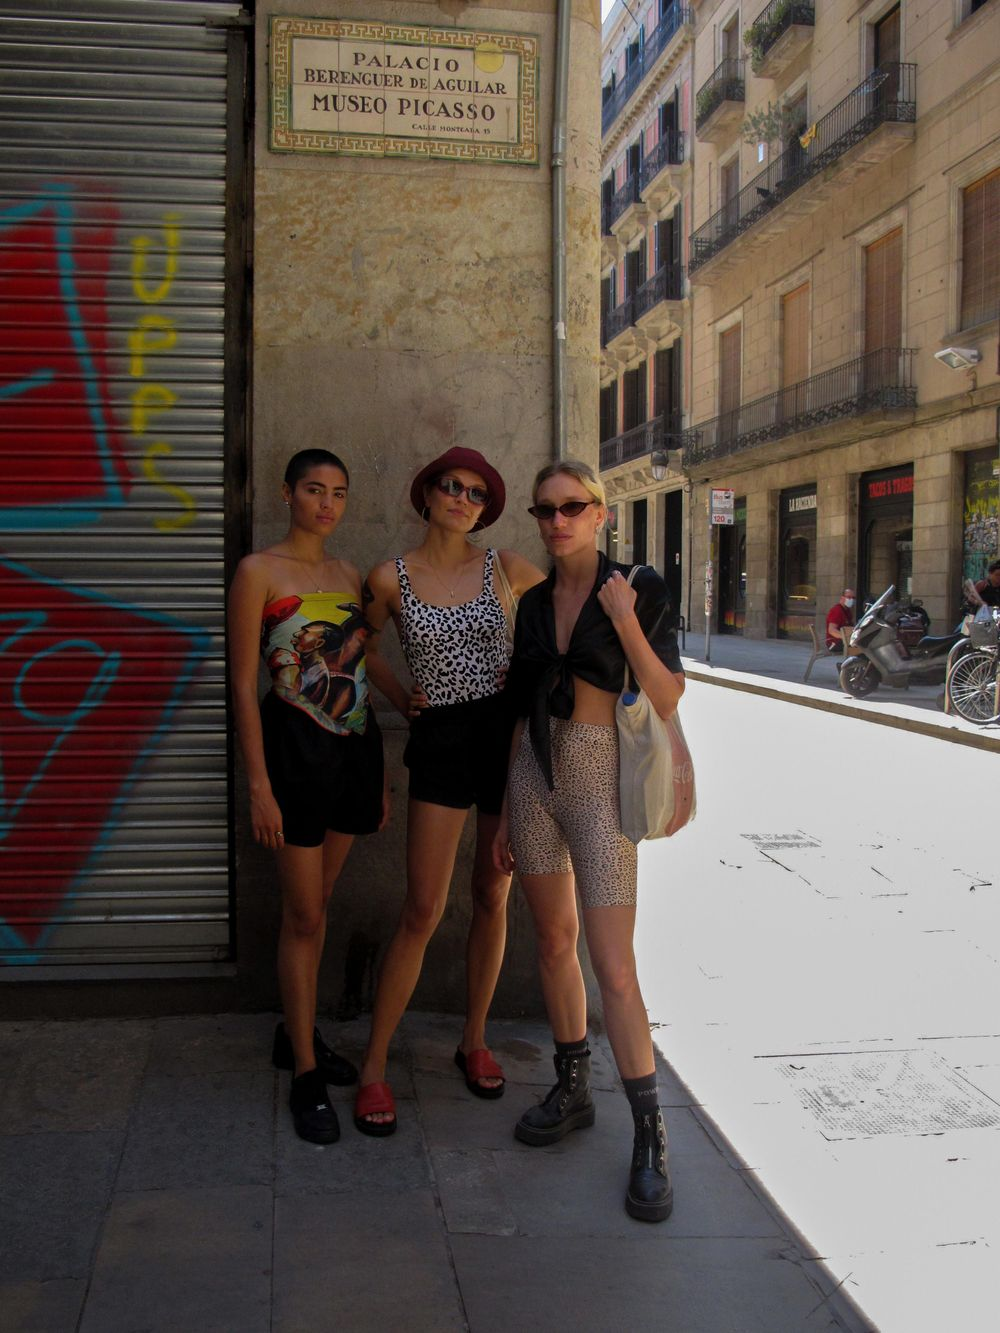 Street Fashion Barcelona (@adoquinculture) - image 2 - student project